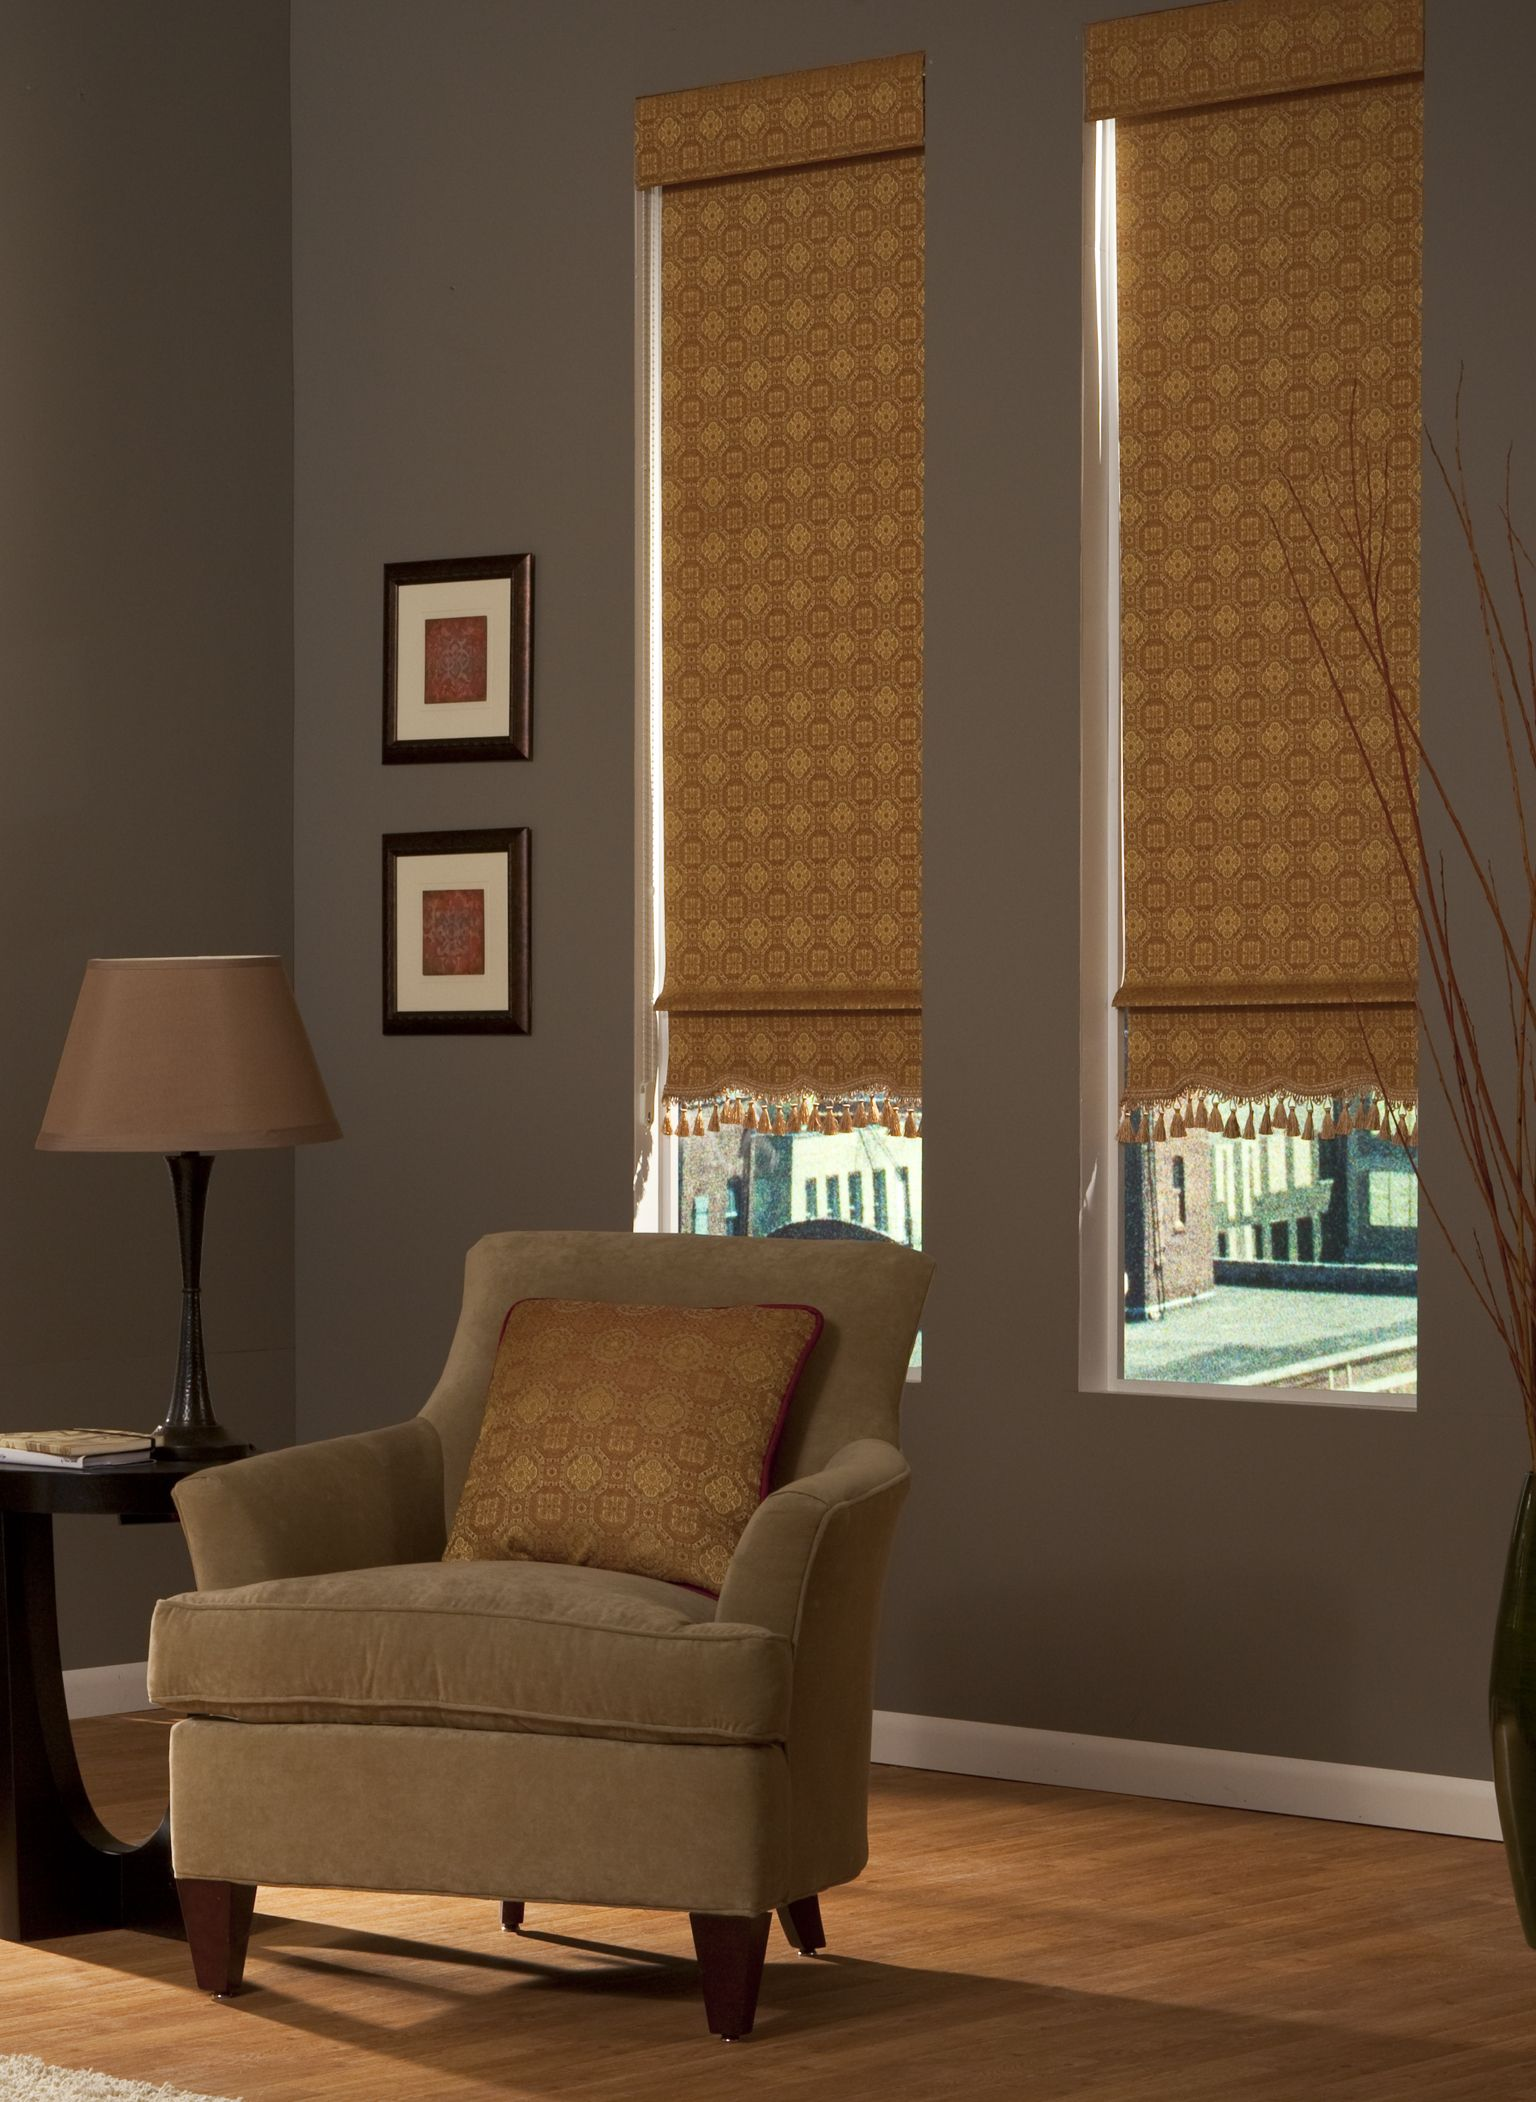 Best Add Extra Flair With Decorative Roller Shades Featuring A This Month